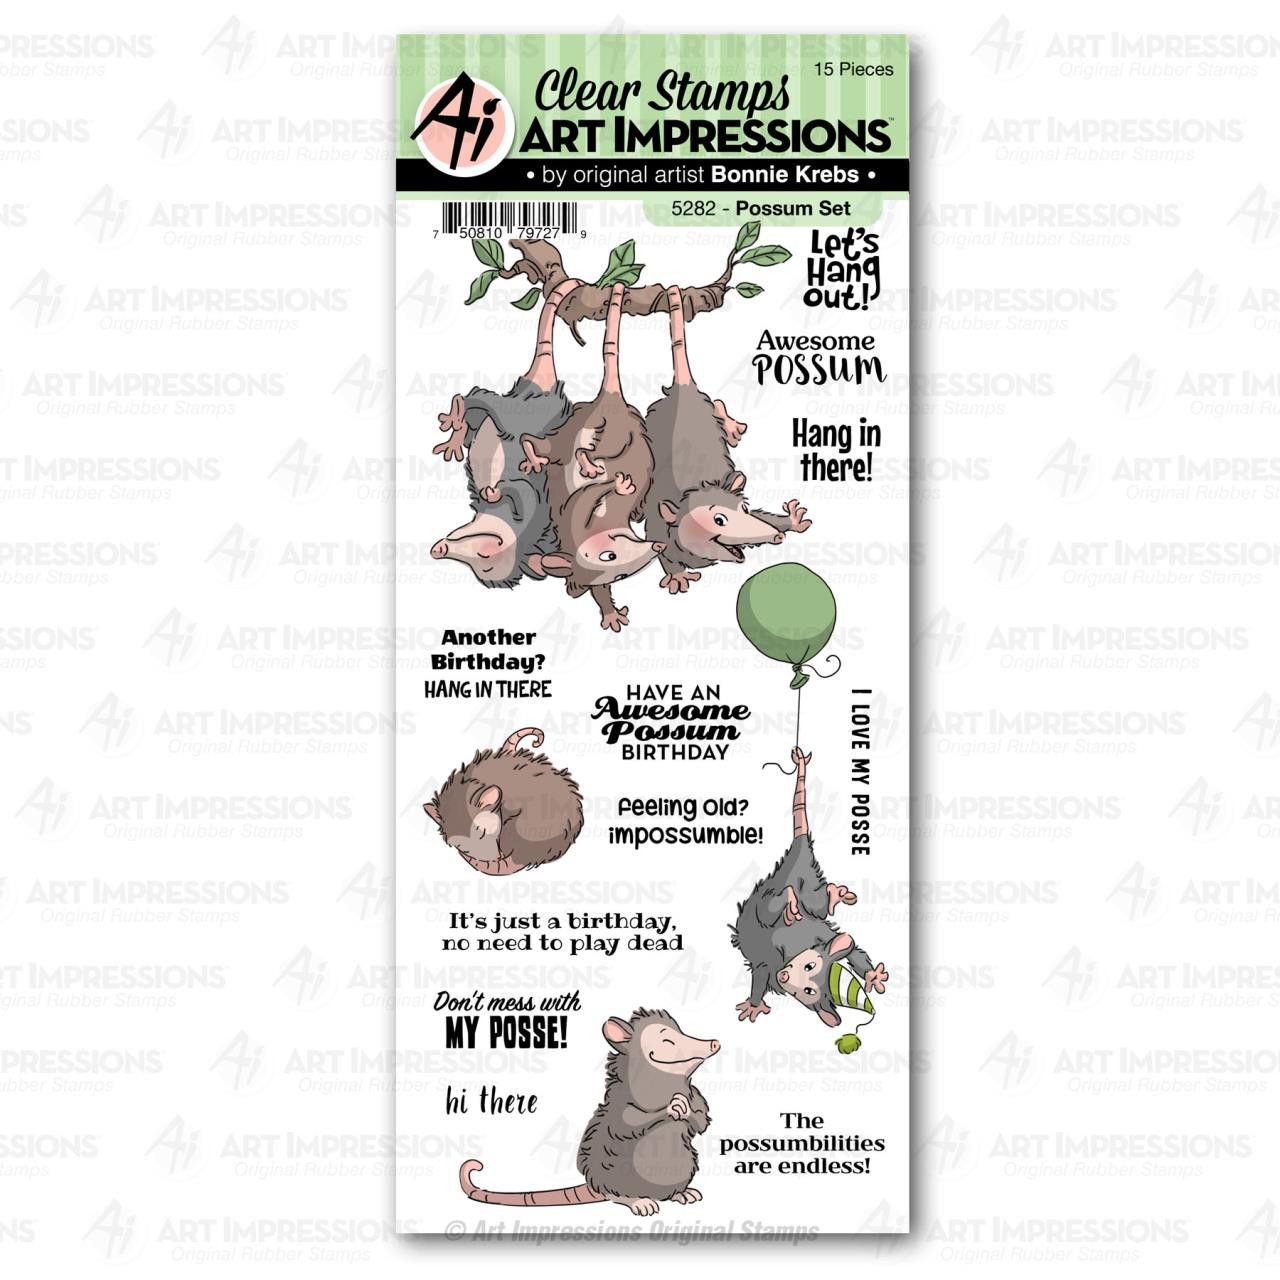 Possum, Art Impressions Clear Stamps - 750810797279